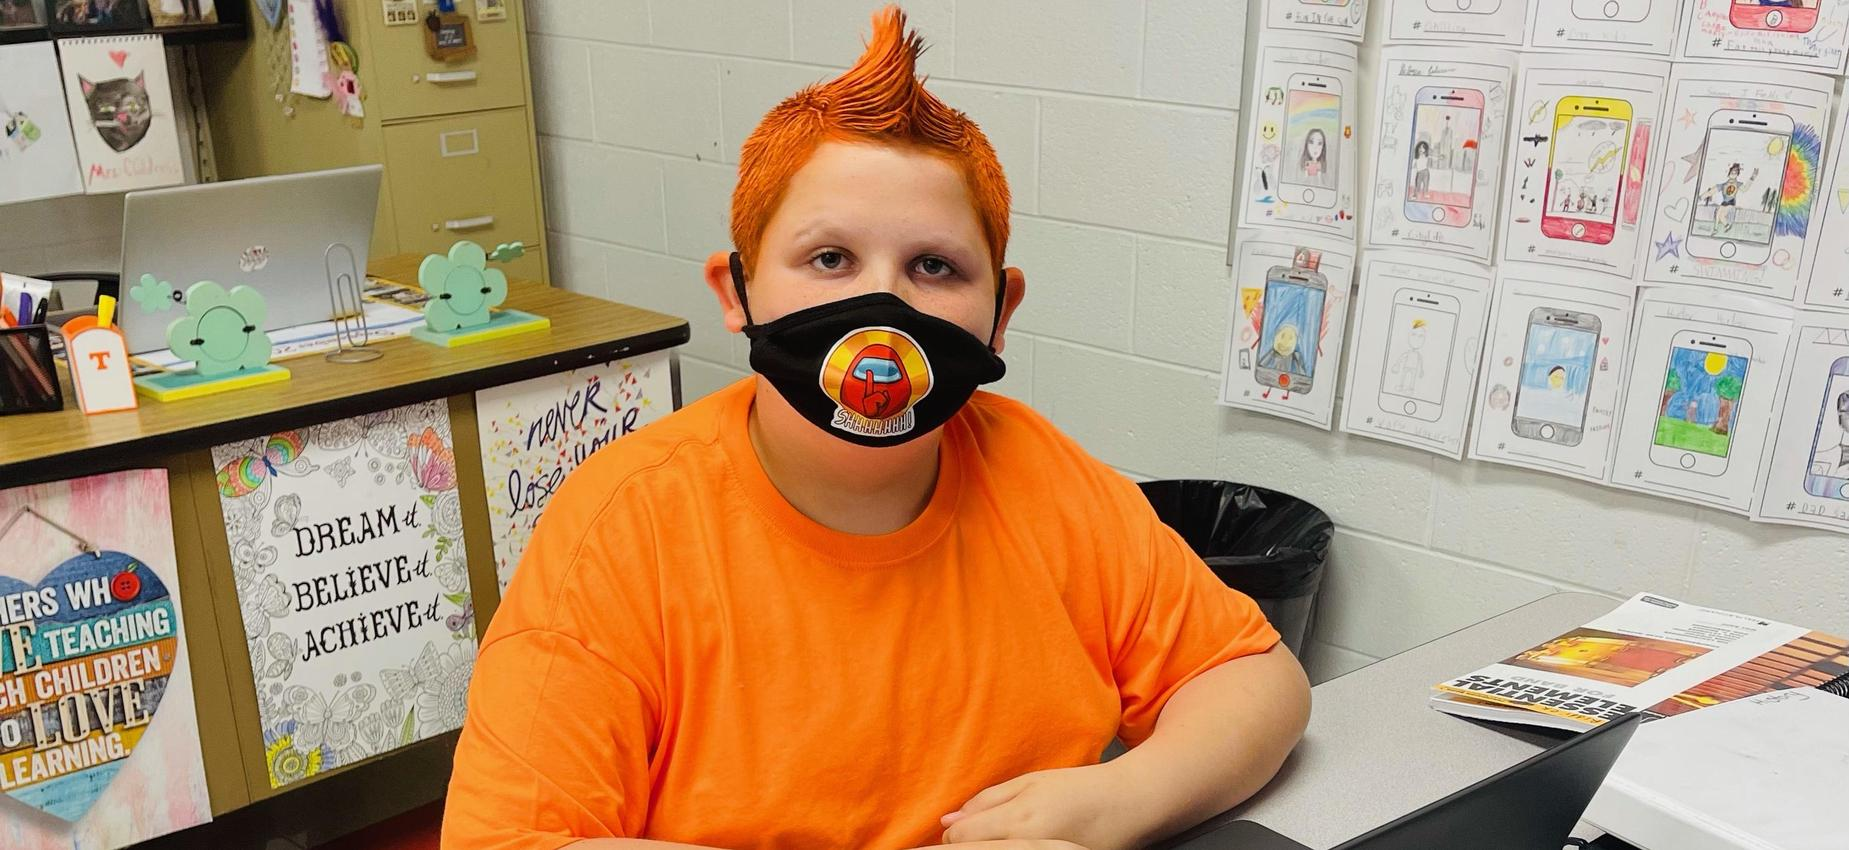 A student wearing orange with orange hair works on a Chromebook.